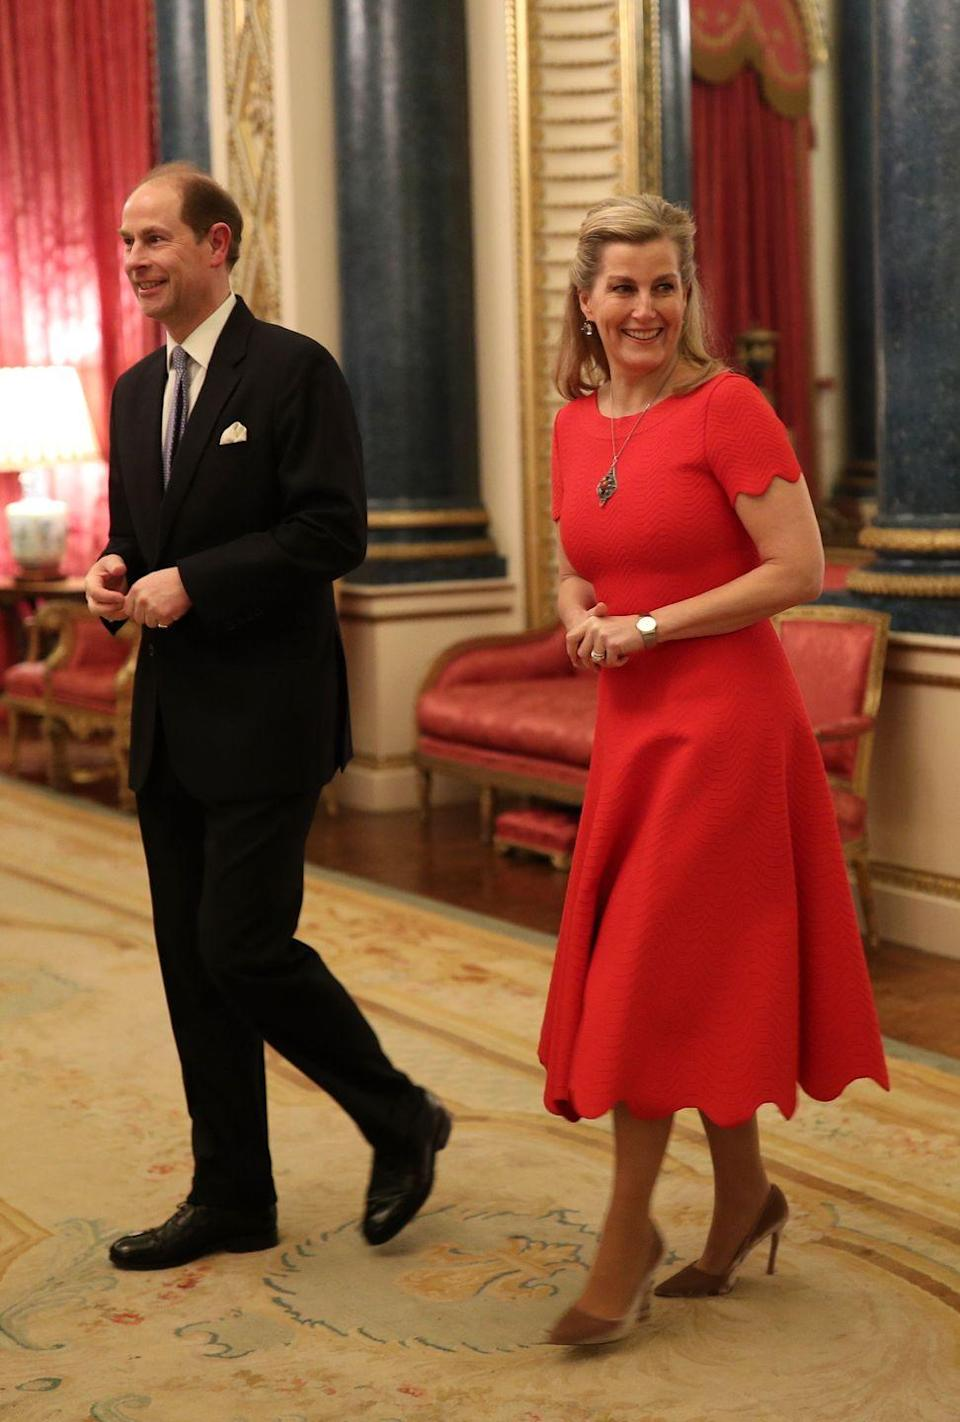 <p>Sophie celebrated her birthday by wearing a bold red dress to a Buckingham Palace reception.</p>